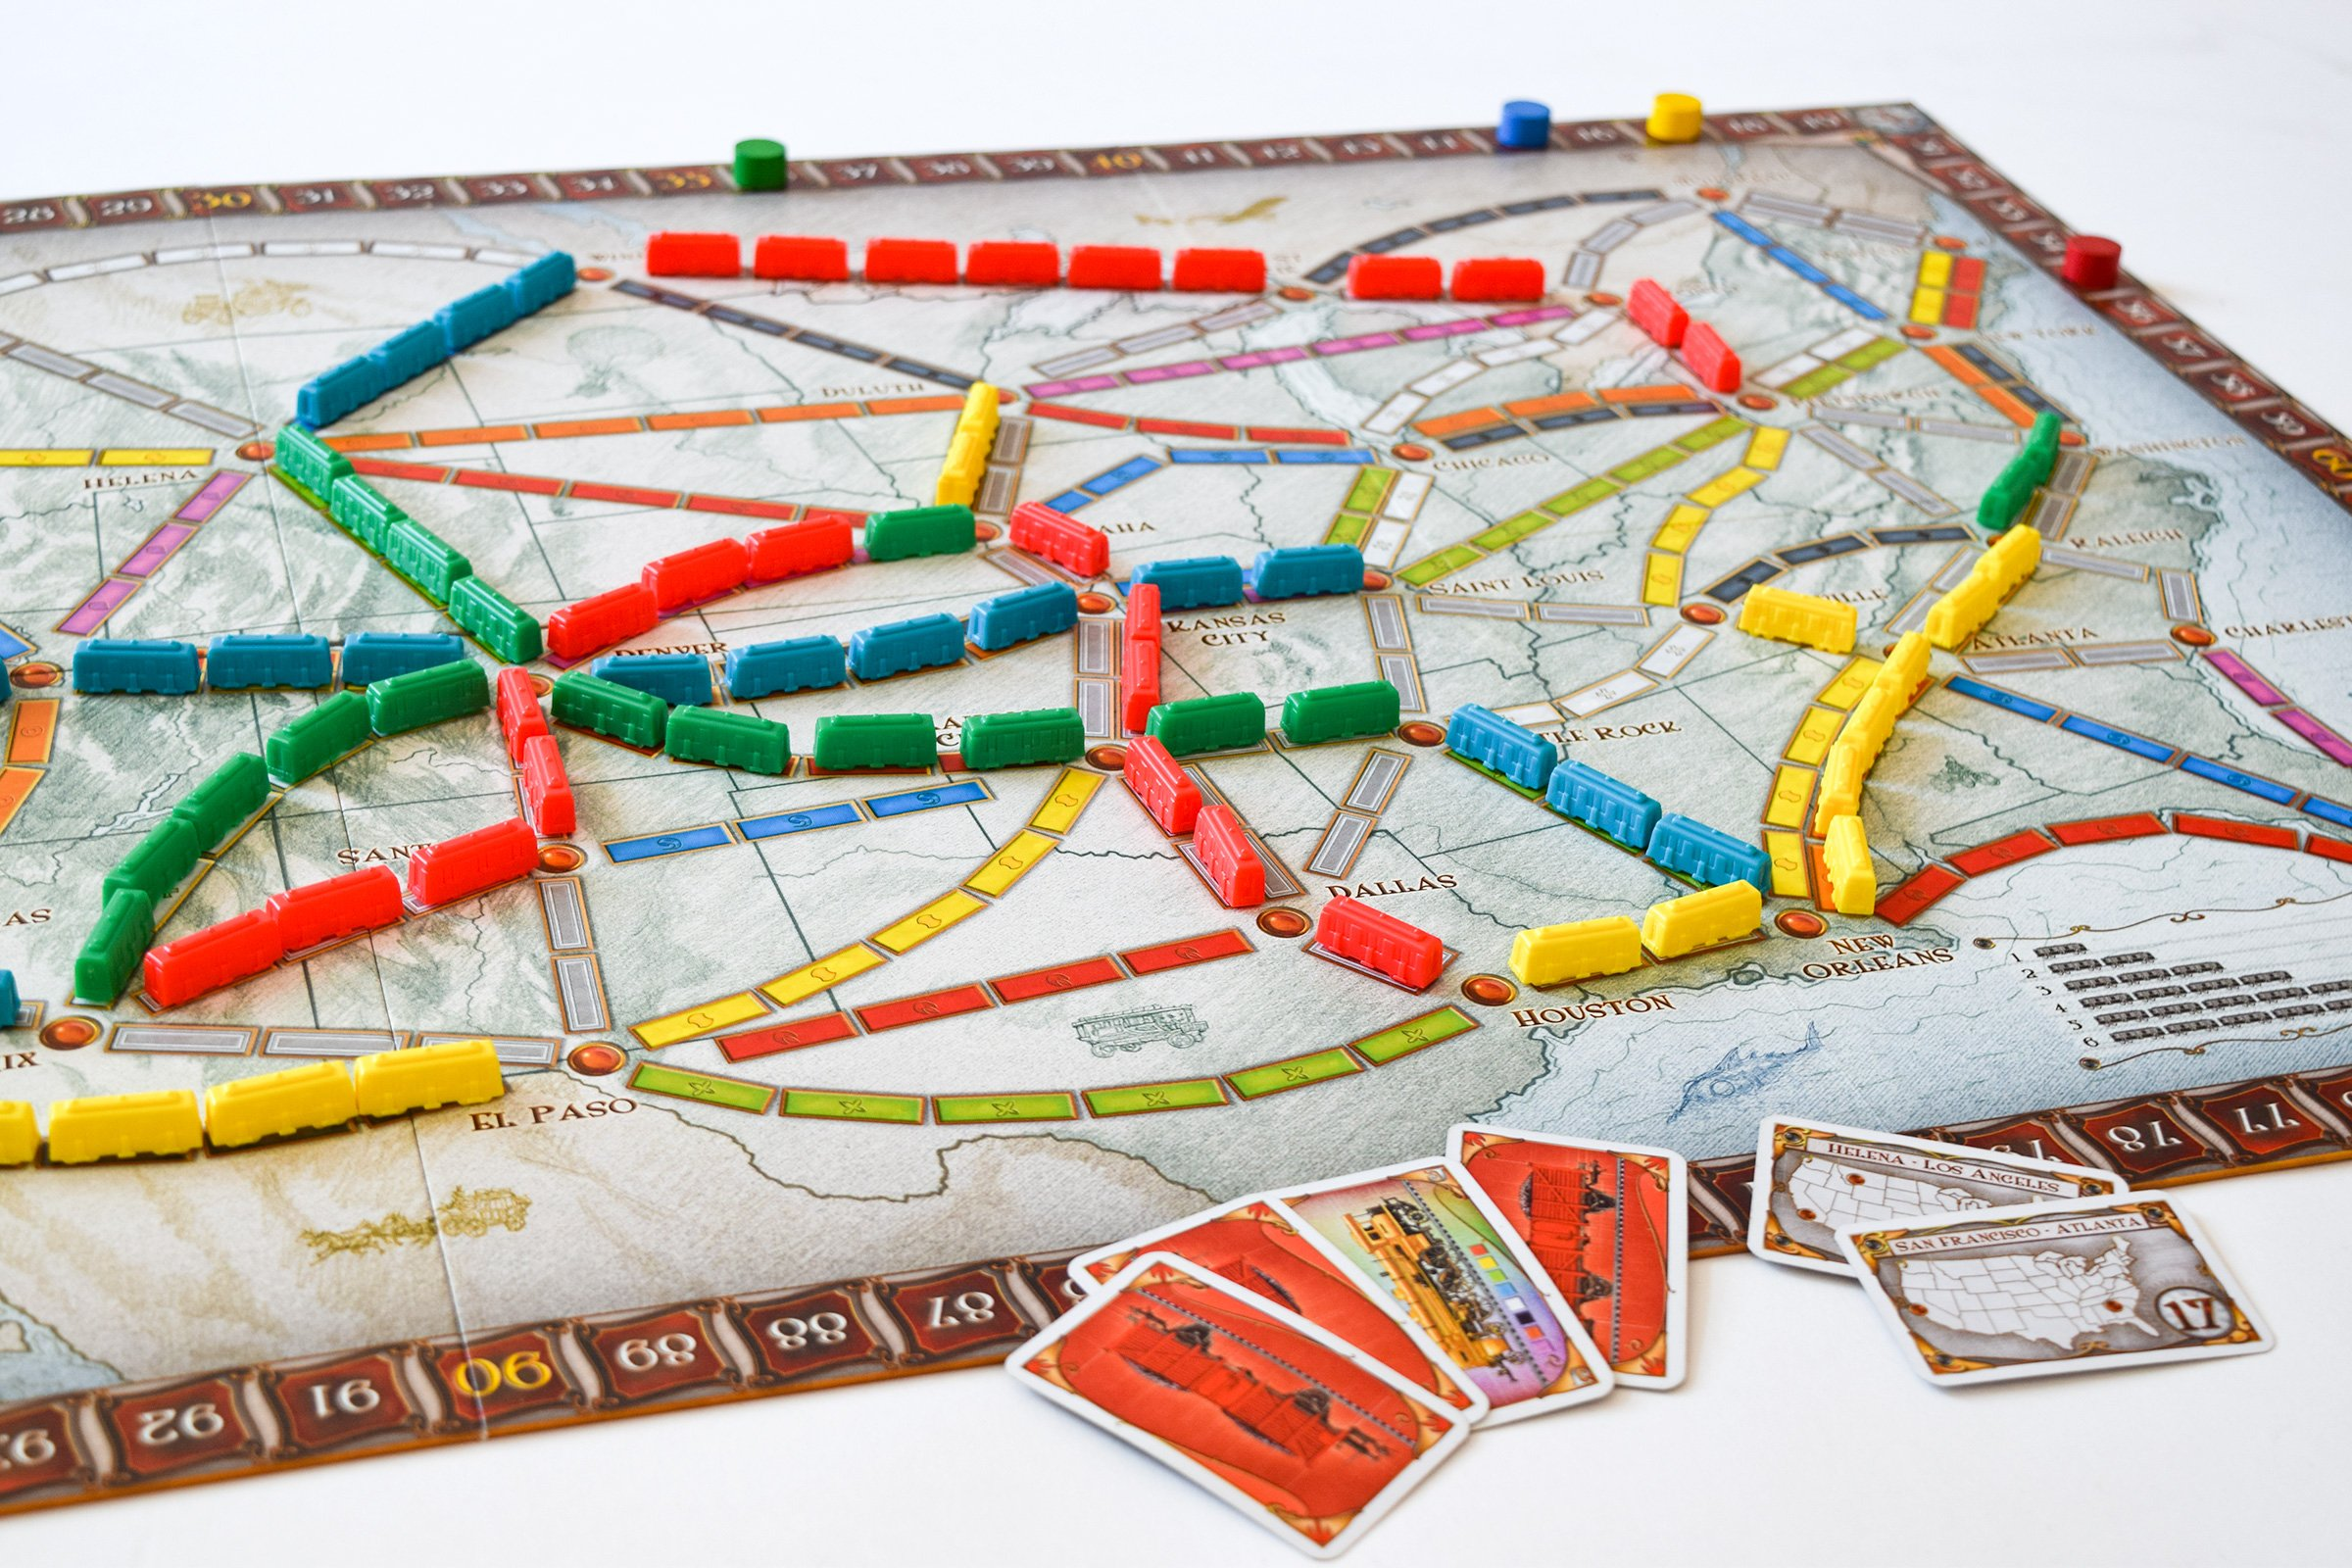 10 Board Games To Play With Friends & Family | Ticket To Ride | Little House On The Corner